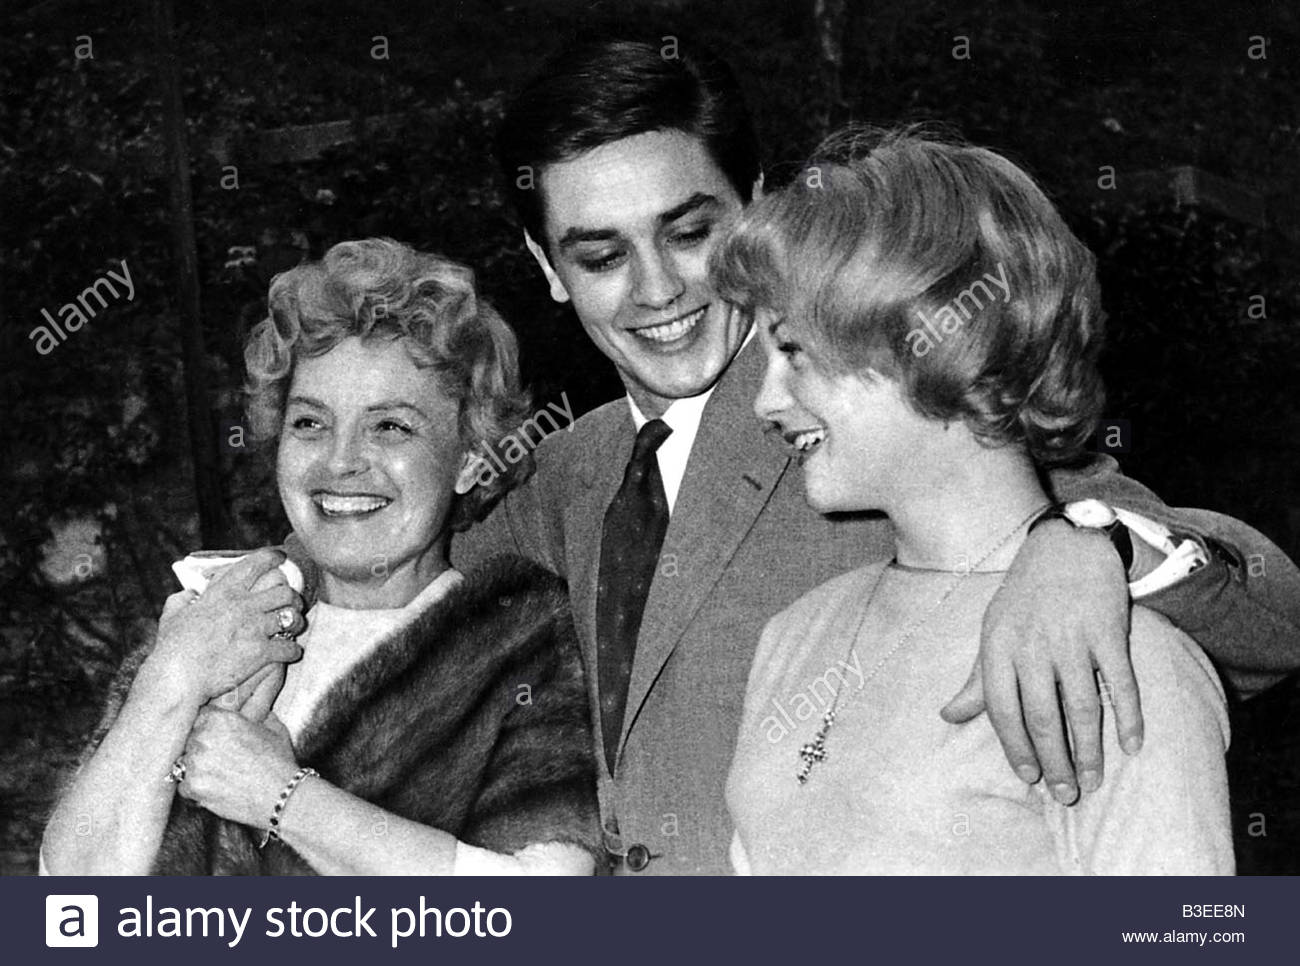 Delon, Alain, * 8.11.1935, French actor, half length, photo with Romy Schneider and her mother Magda Schneider, - Stock Image